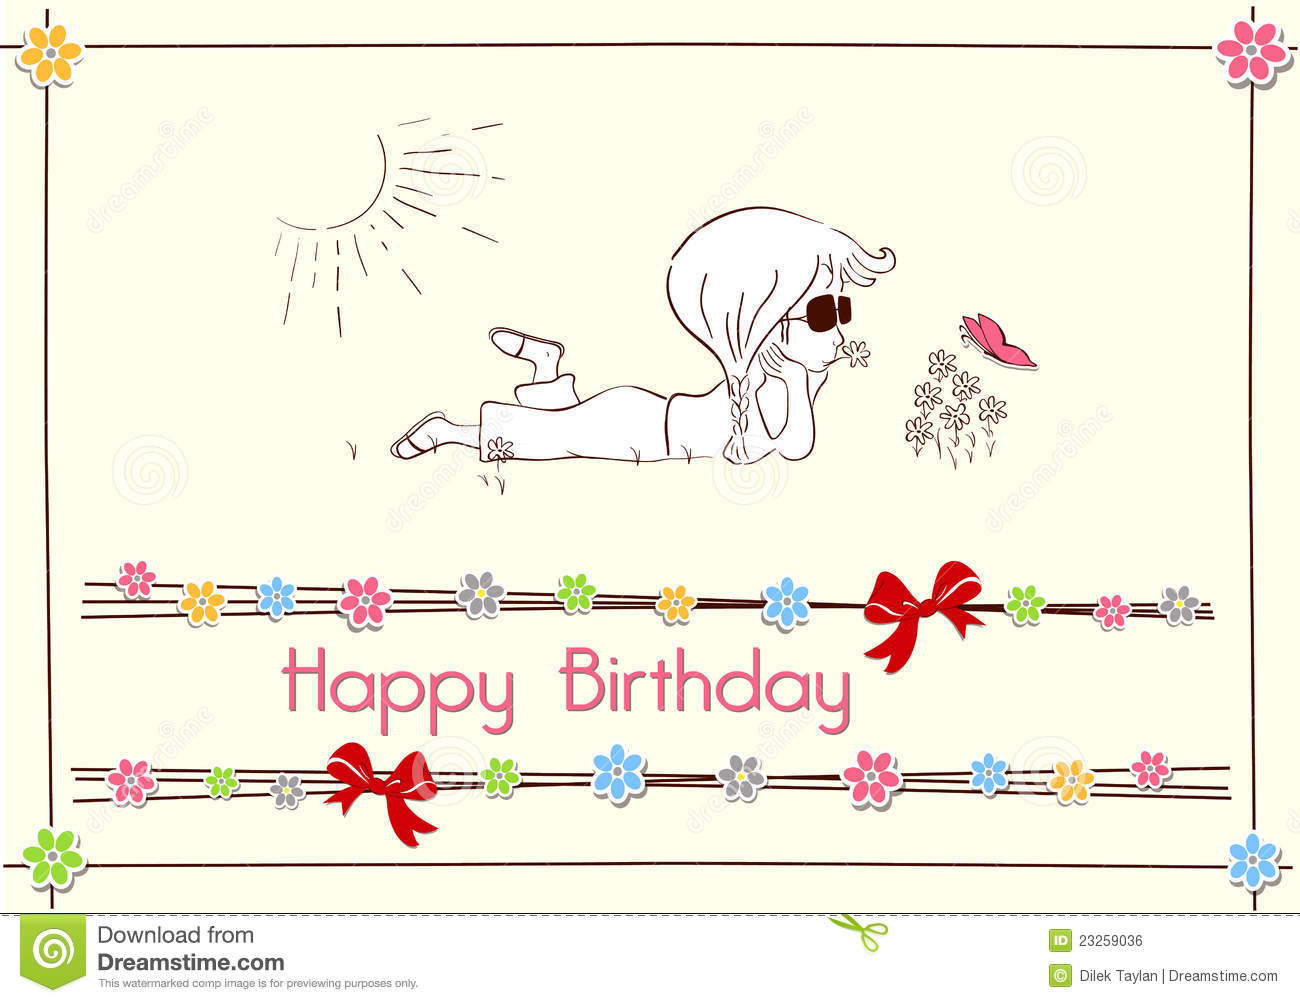 Happy Birthday Card Design Royalty Free Image Image 23259036 – Happy Birthday Card Design Free